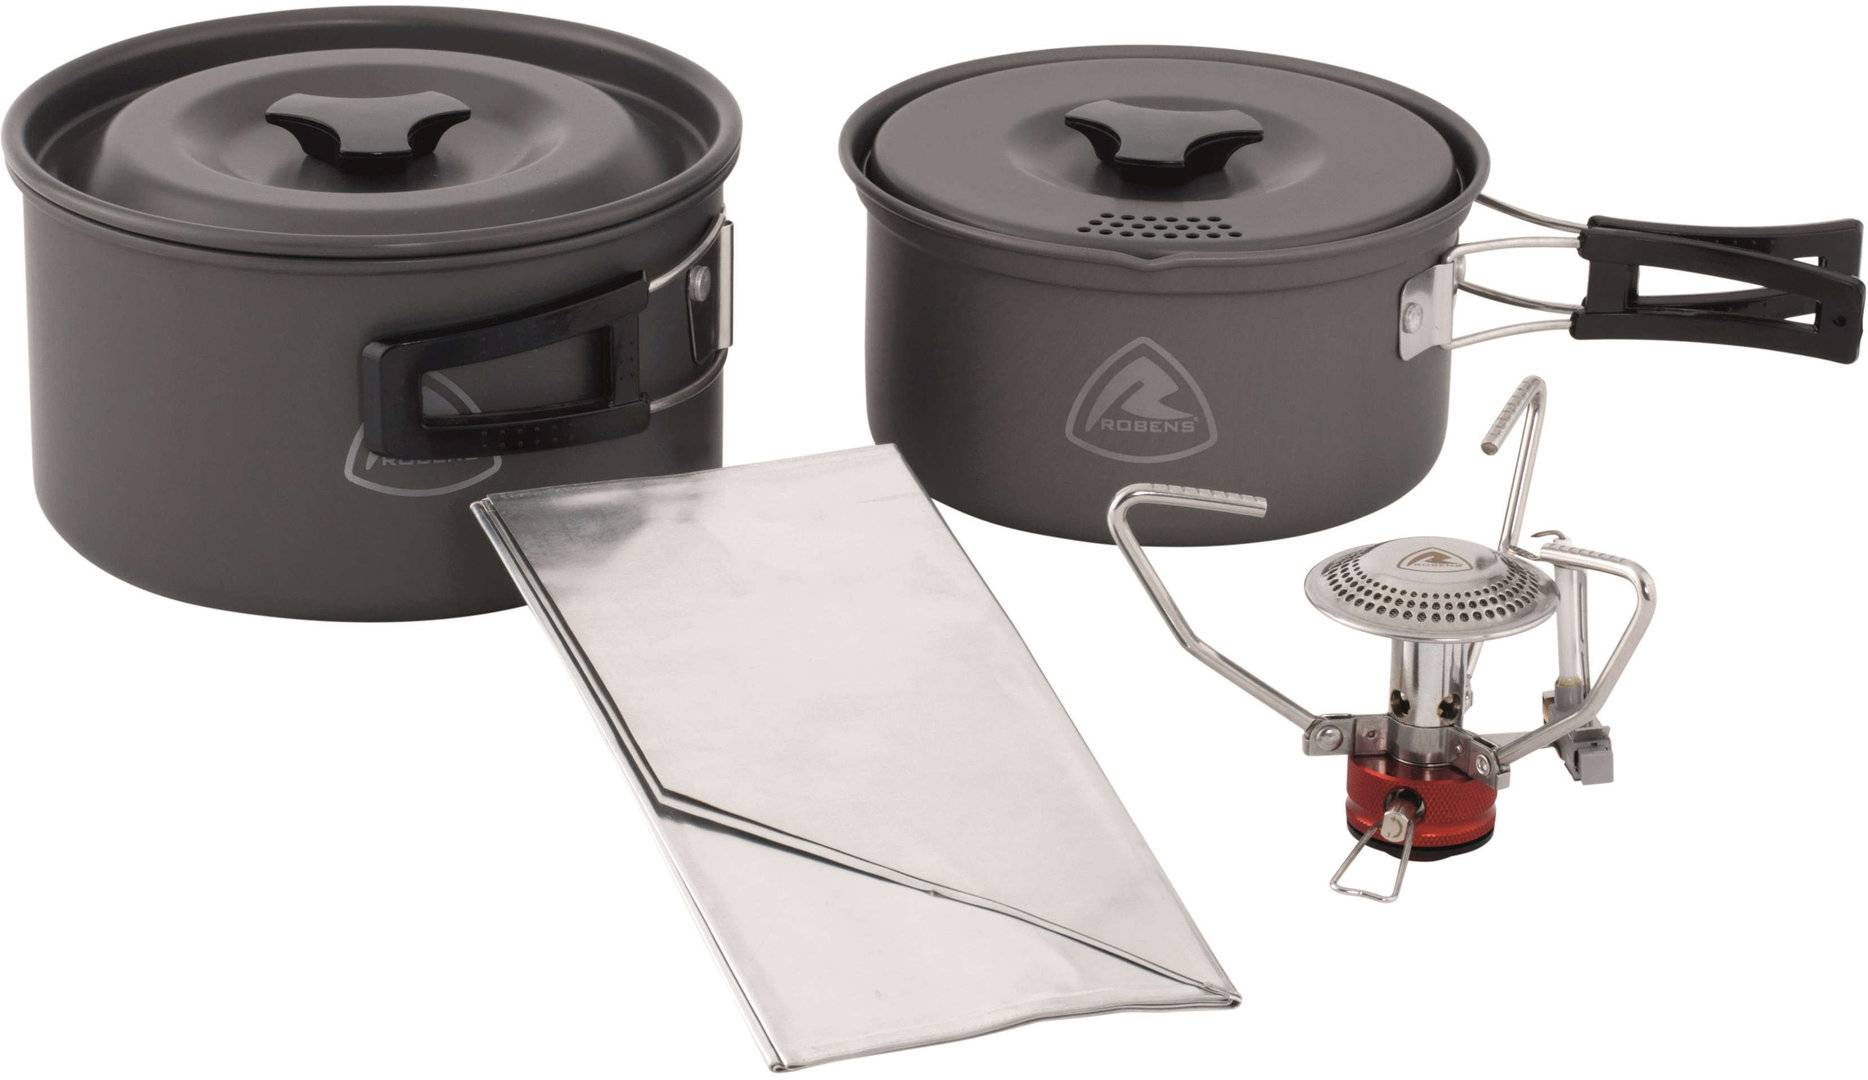 Robens Fire Ant Cook System 2-3 Black One Size